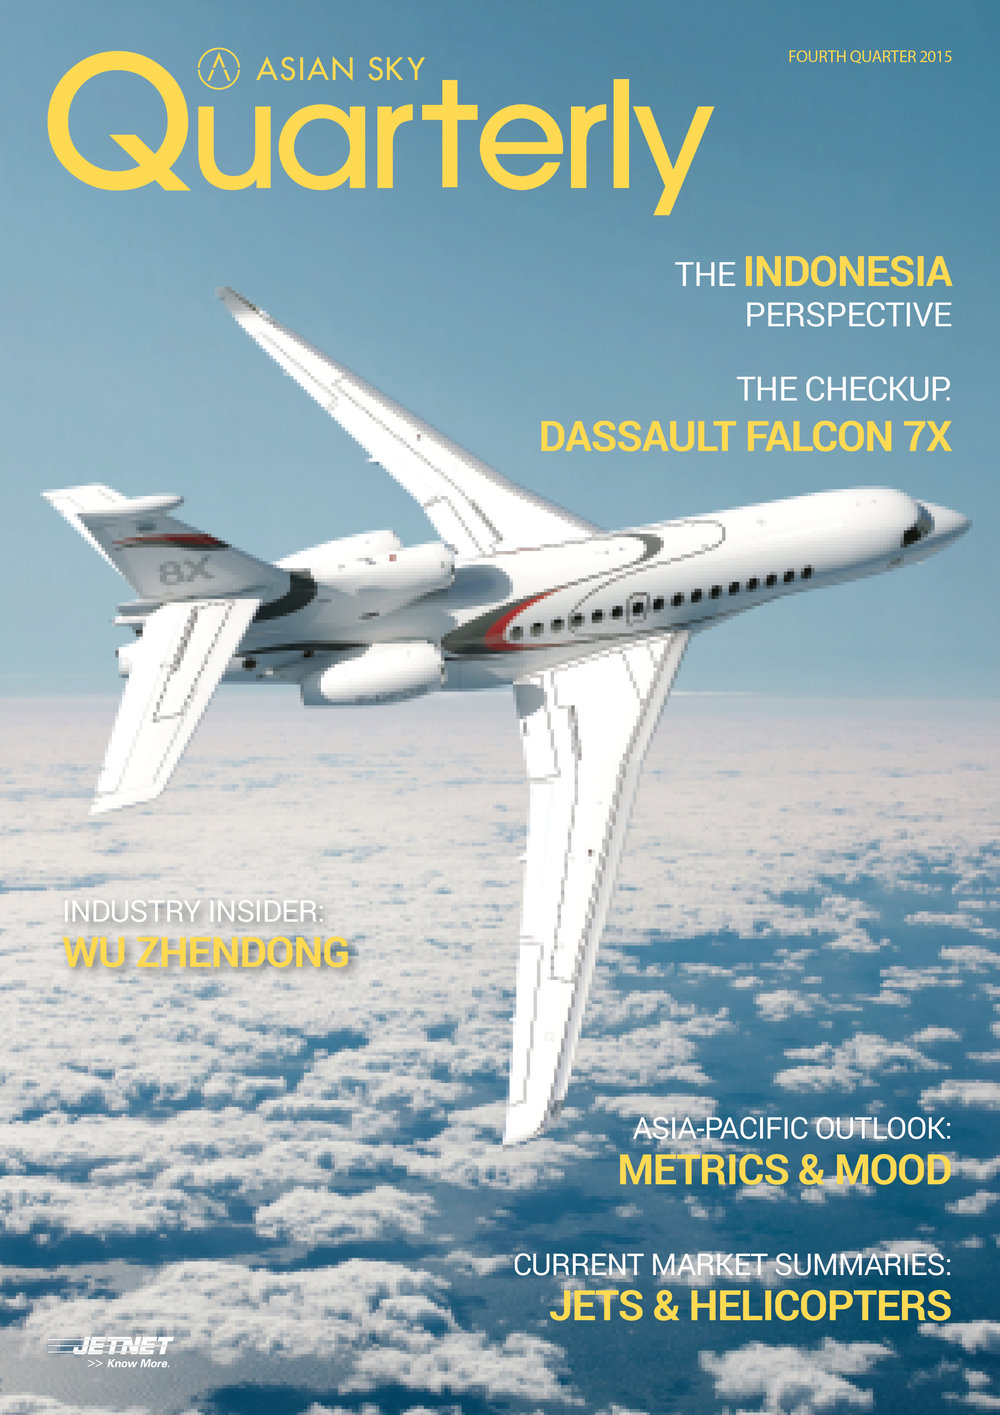 Asian Sky Quarterly - 2015 Q4